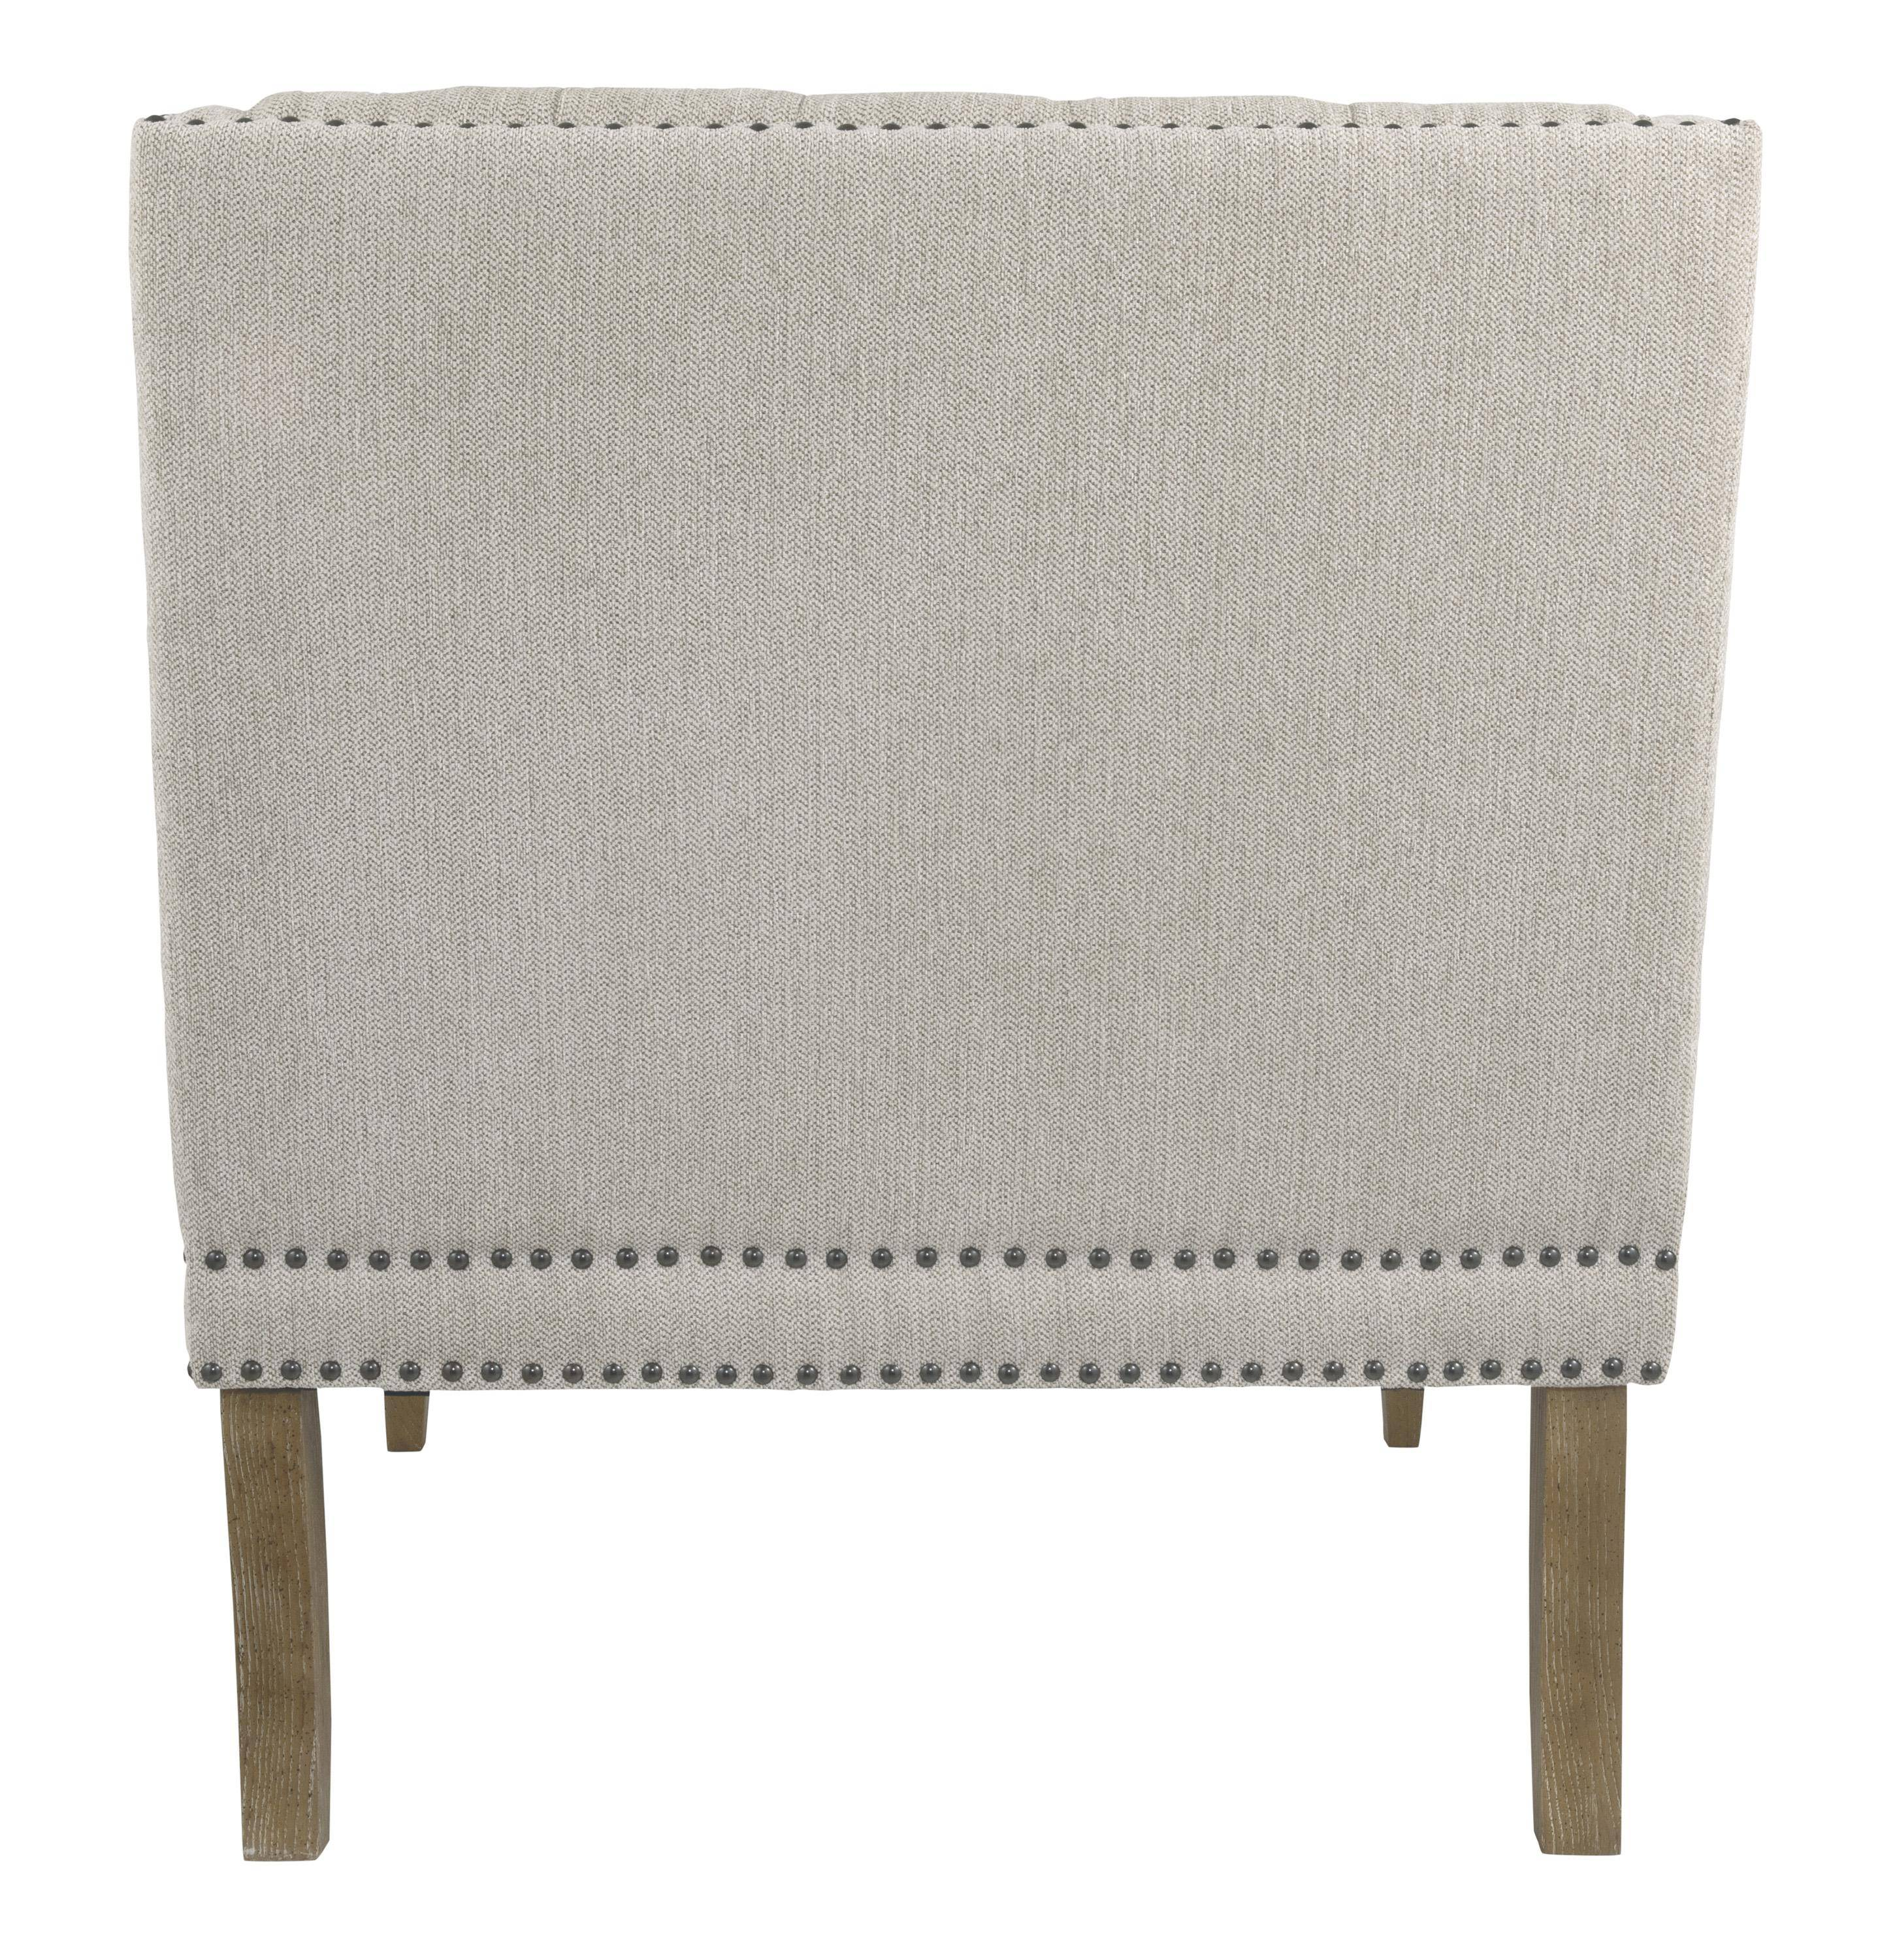 Ashley Trivia A3000039 Accent Chair In Bone Polyester